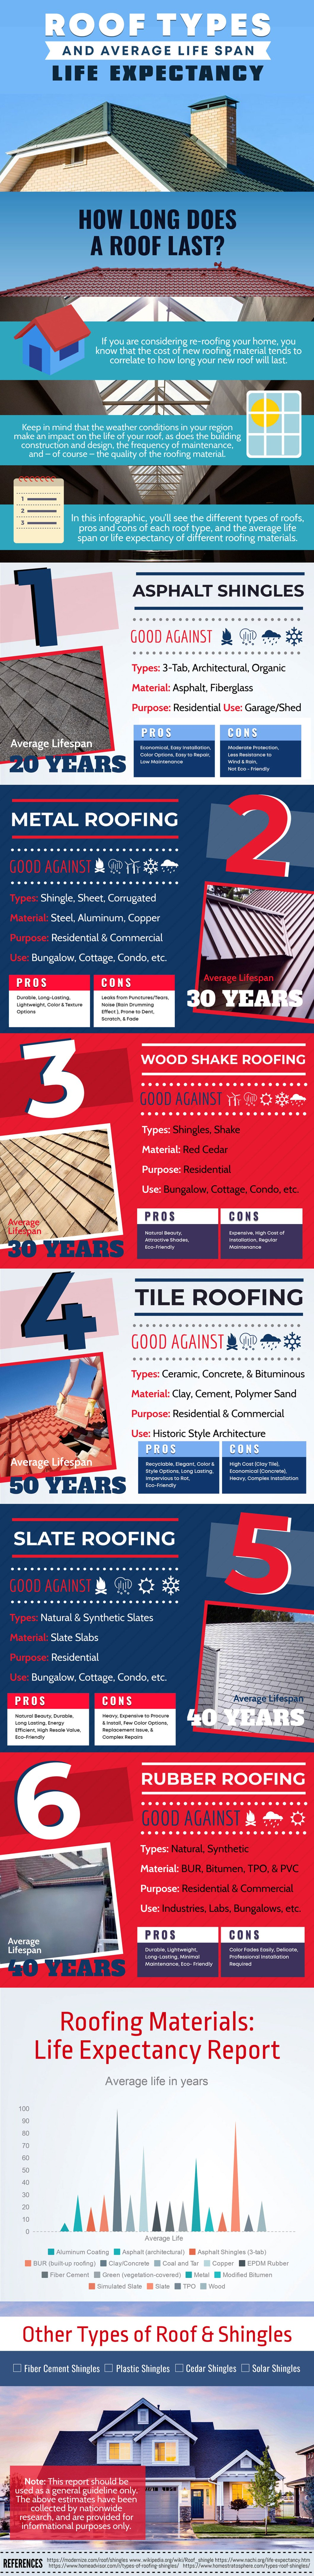 Comprehensive Guide on Roofs and Their Life Span - Infographic